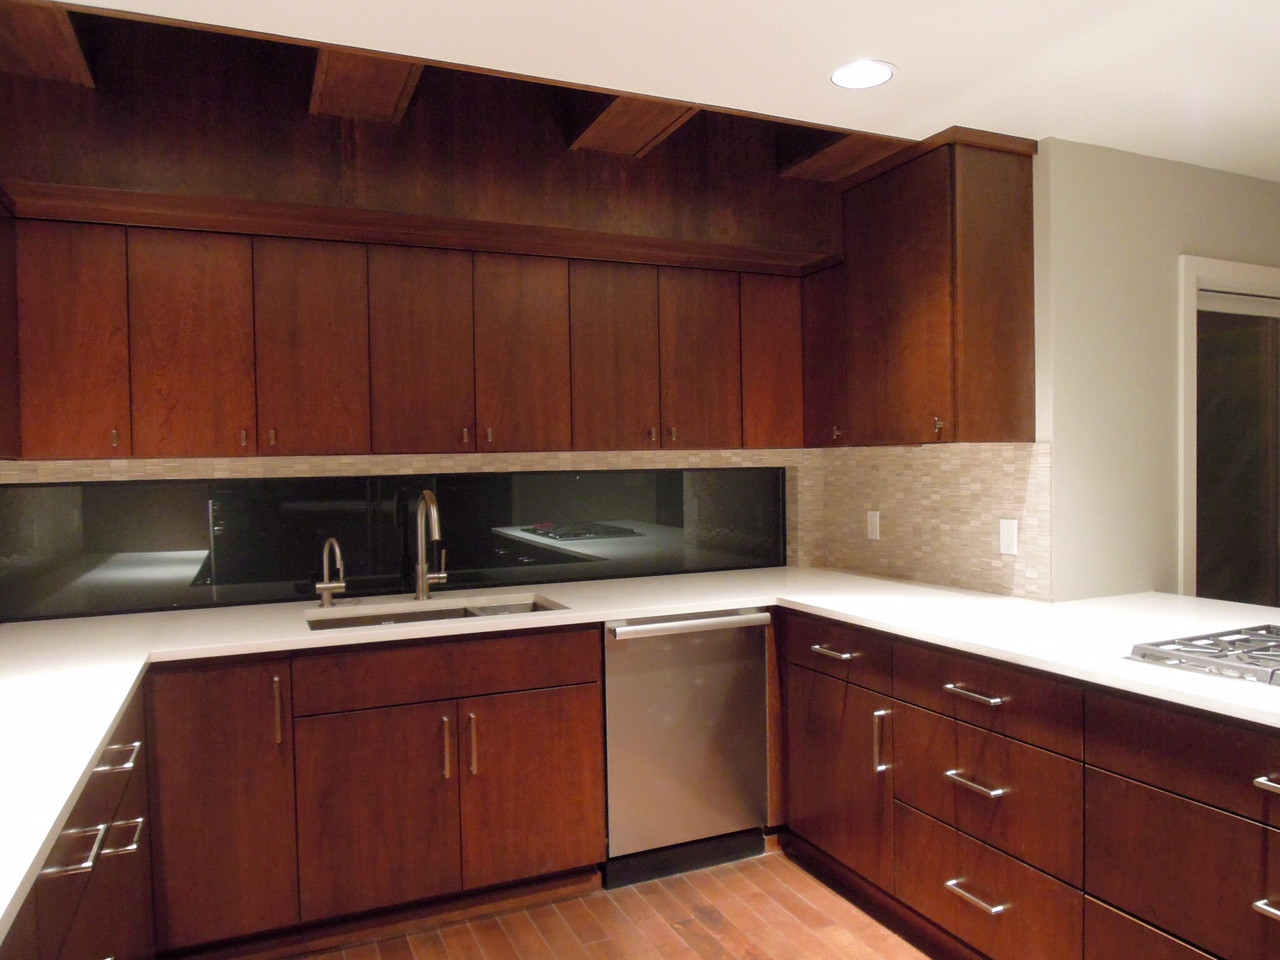 electrical  Do undercabinet outlets need to be provided above a window  Home Improvement